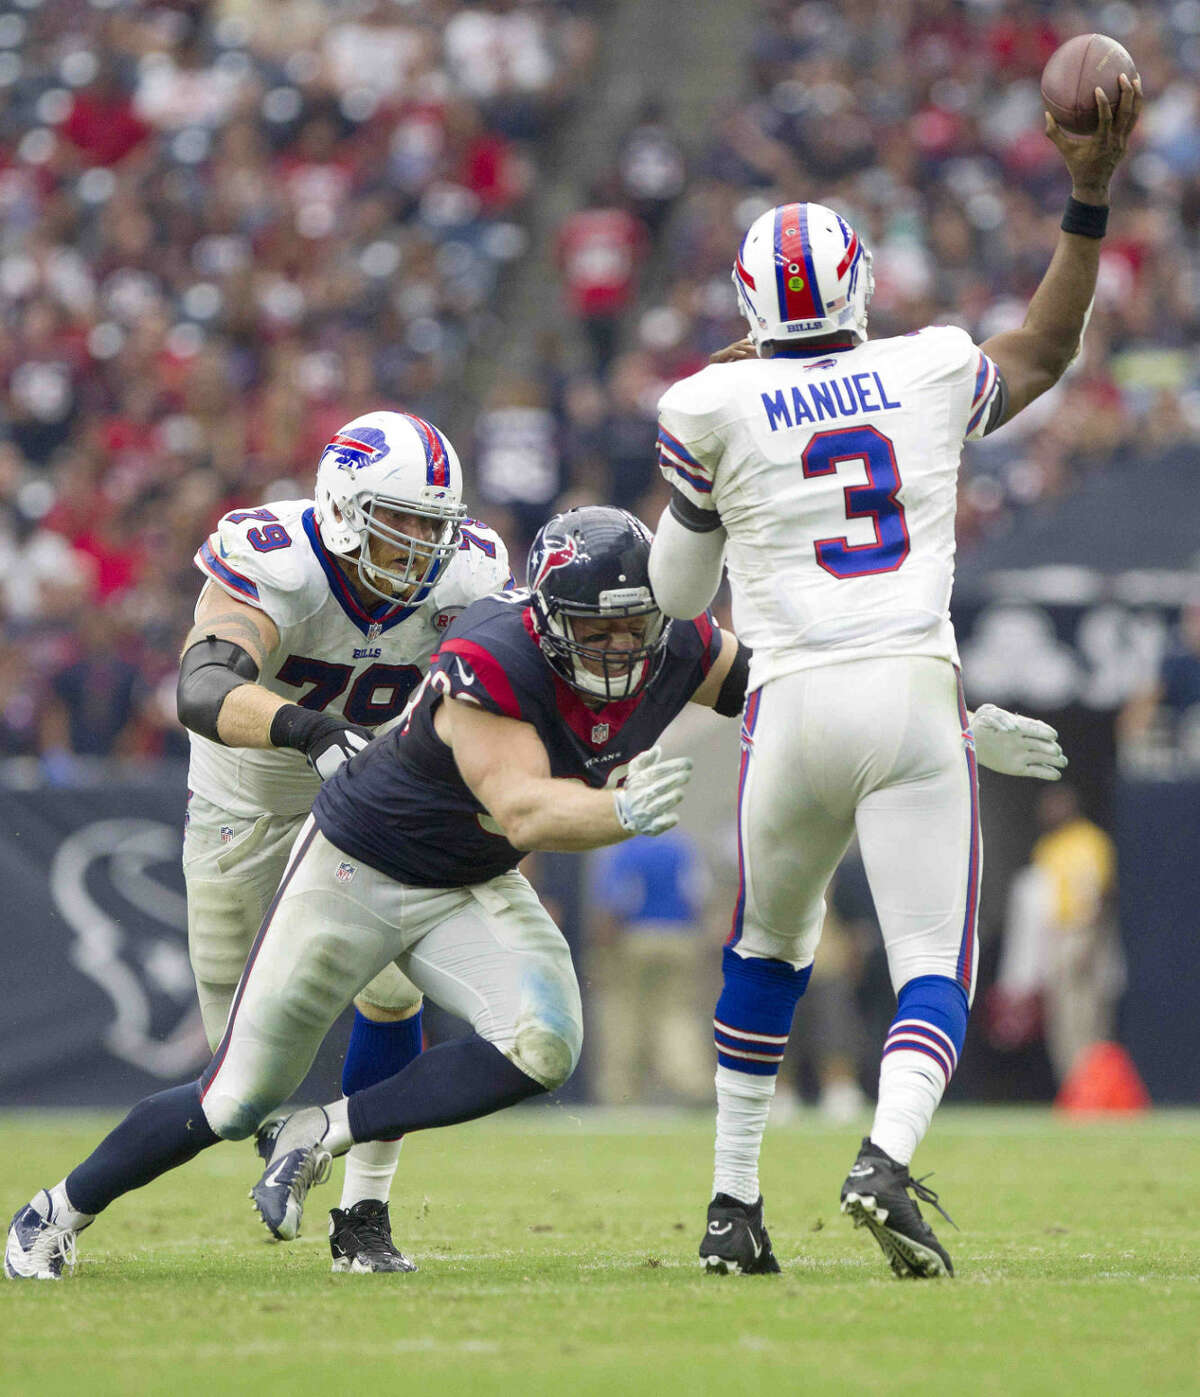 Houston Texans defensive end J.J. Watt pressures Buffalo Bills quarterback EJ Manuel during the first half of an NFL football game Sunday. The Houston Texans defeated the Buffalo Bills 23-17.